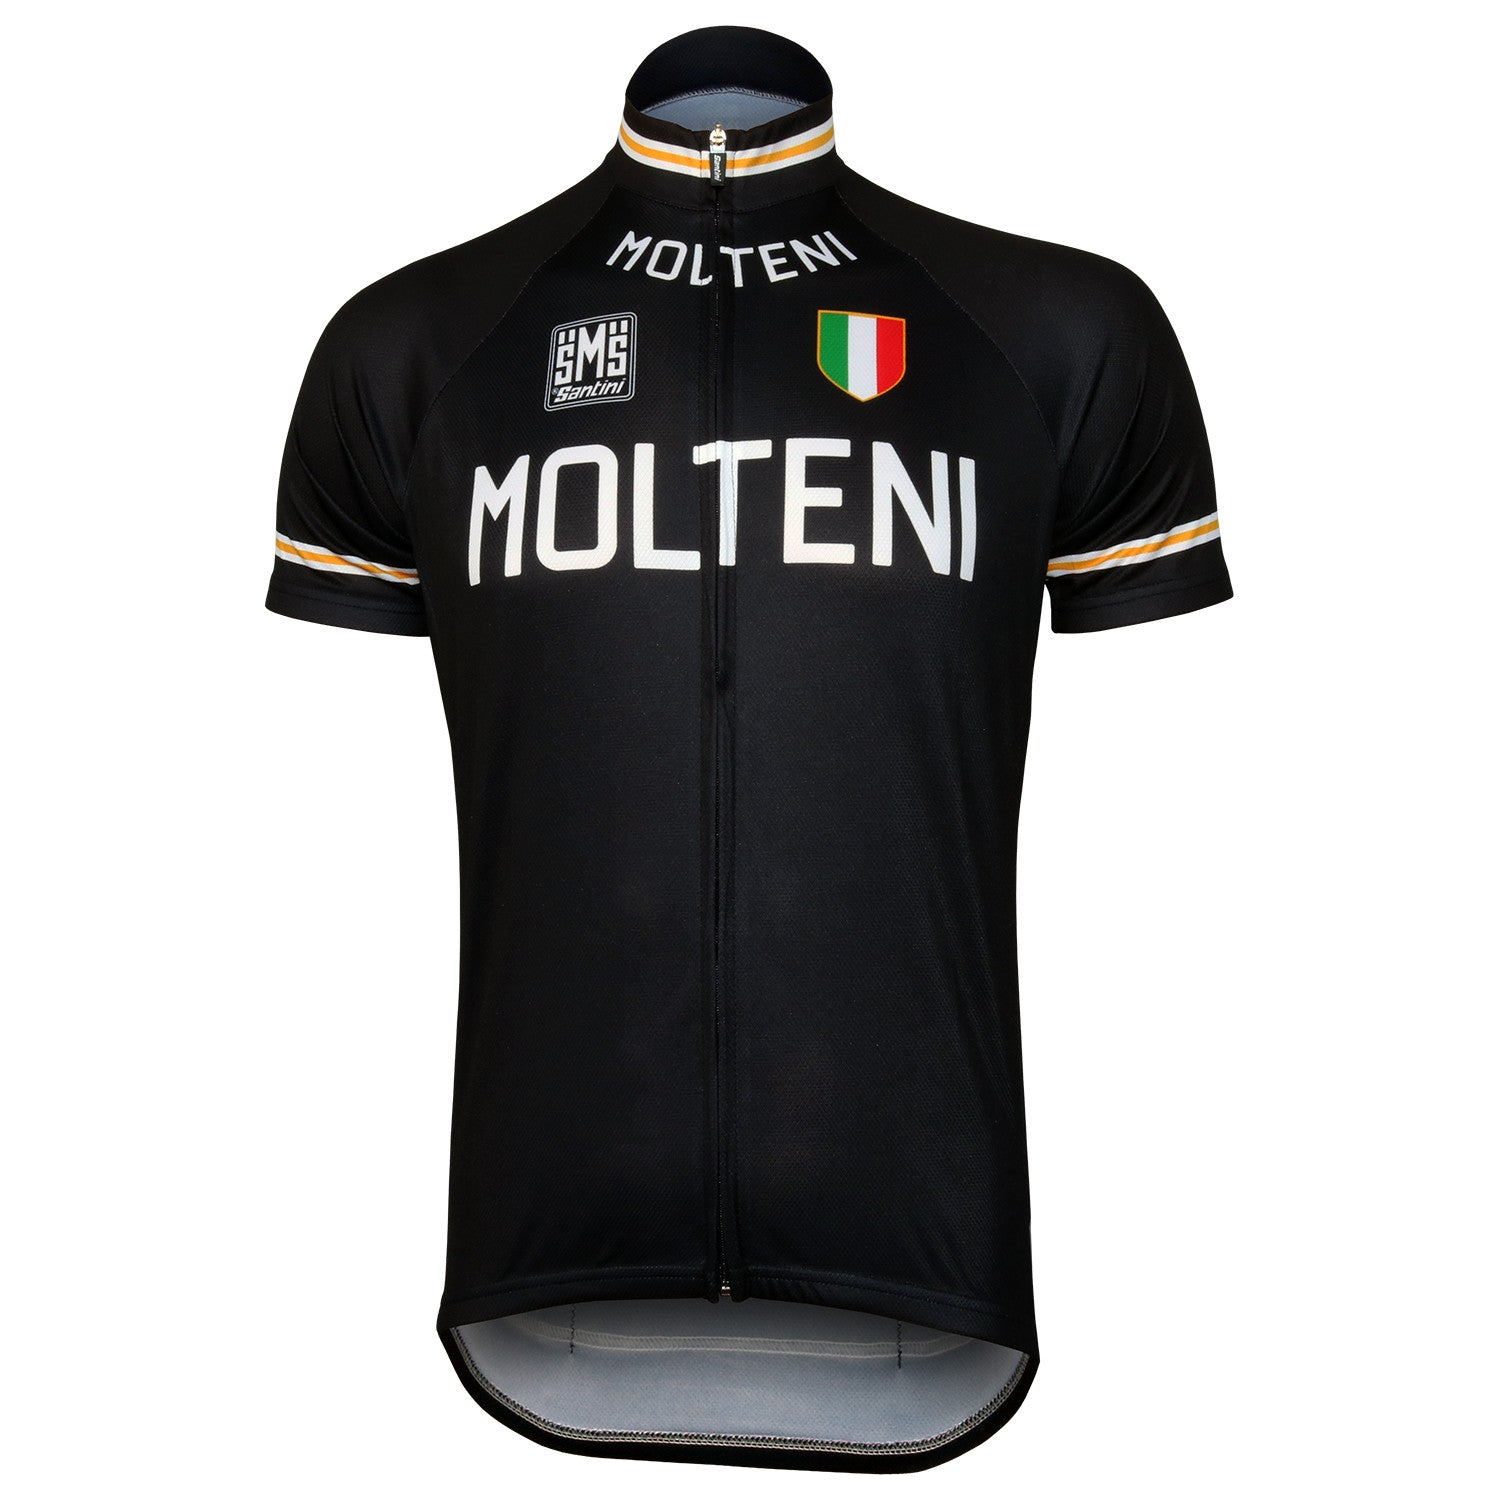 Cycling jerseys available to buy with short sleeves or long sleeves ... 63a99ef36